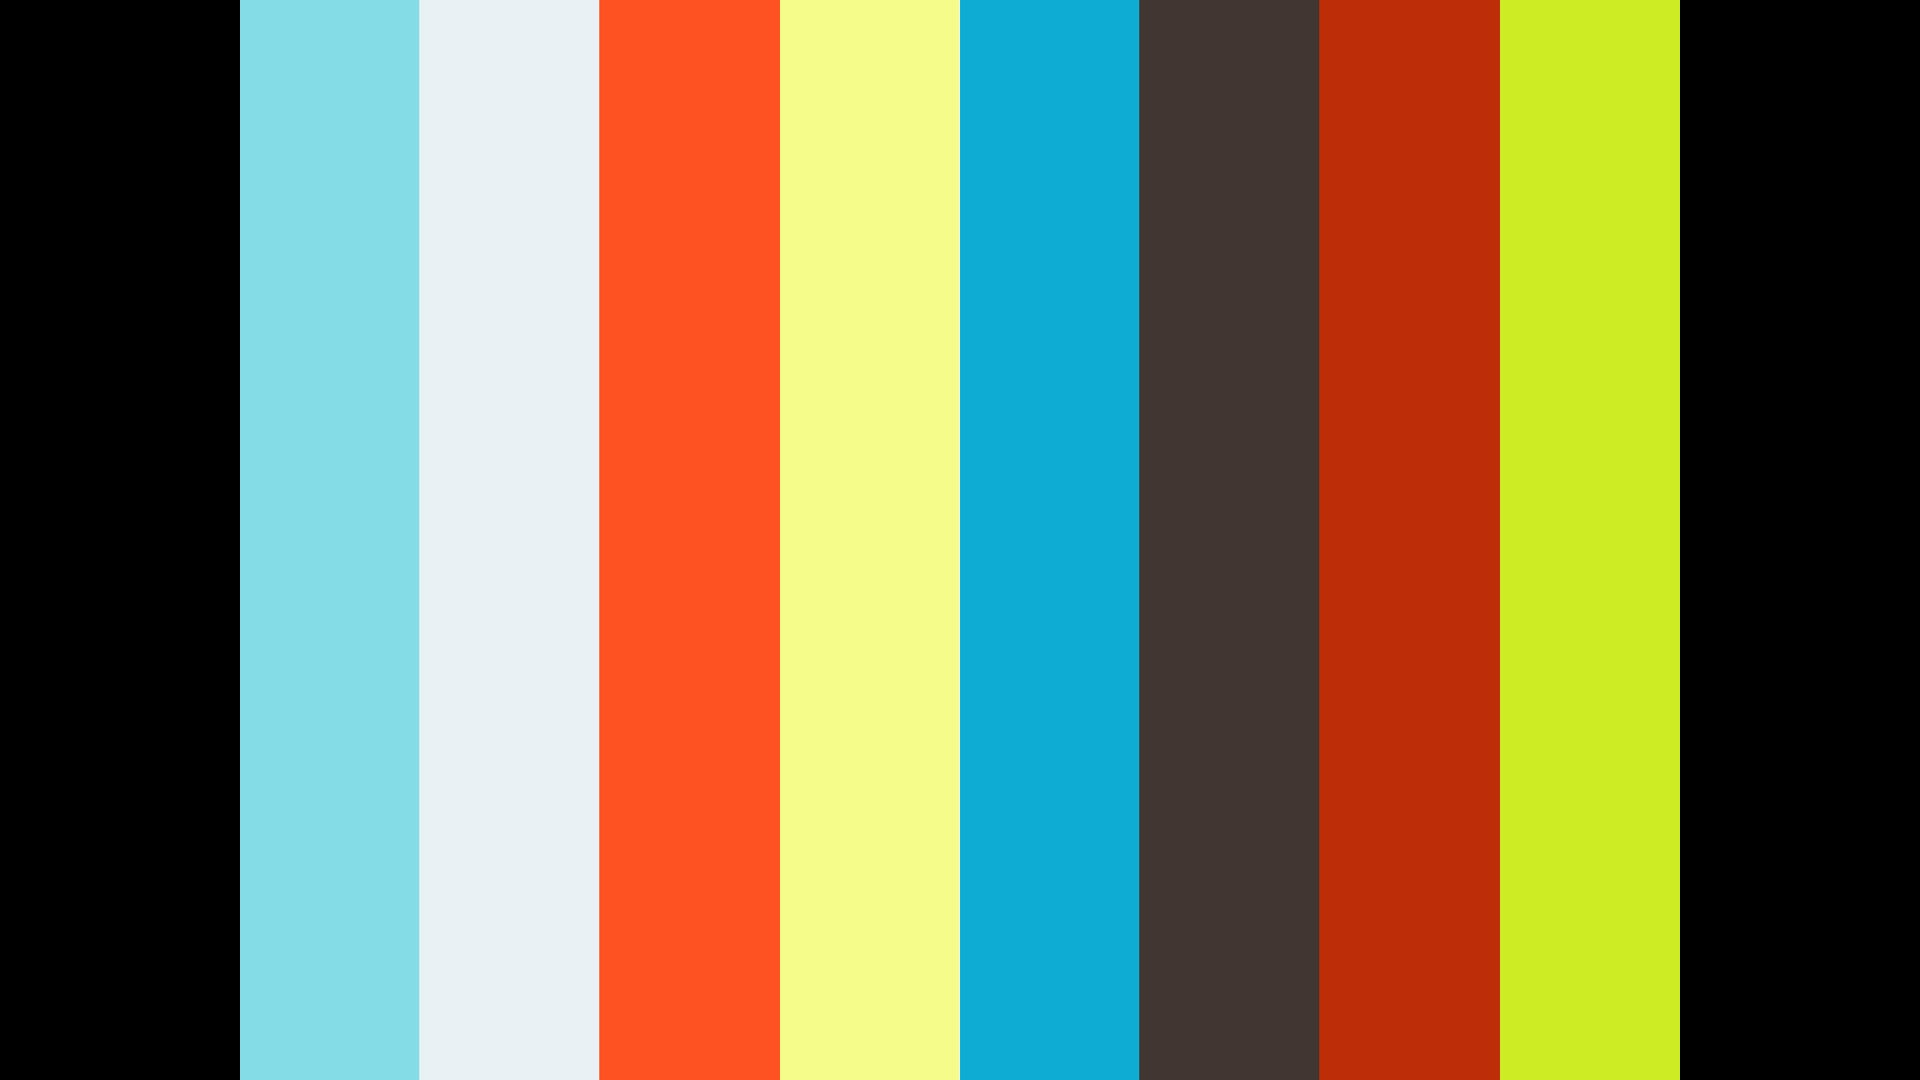 Performance by J. S. Ruíz and E. Ernesto (2)